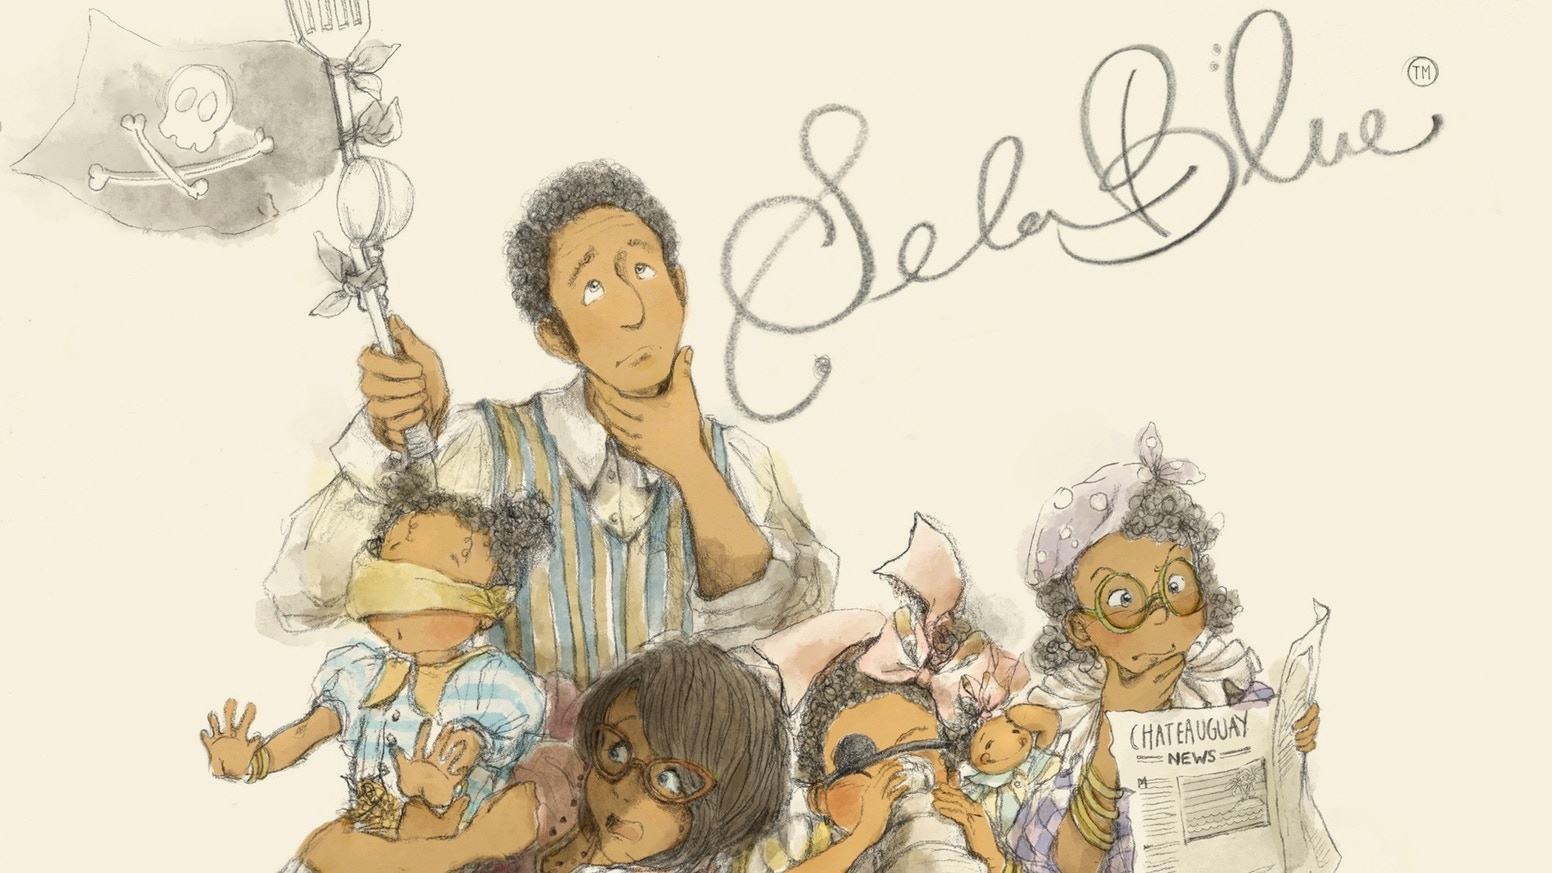 Sela Blue is a picture book that recounts the adventures of 6-year old Sela growing up in her multi-mosaic cultural world in Canada.